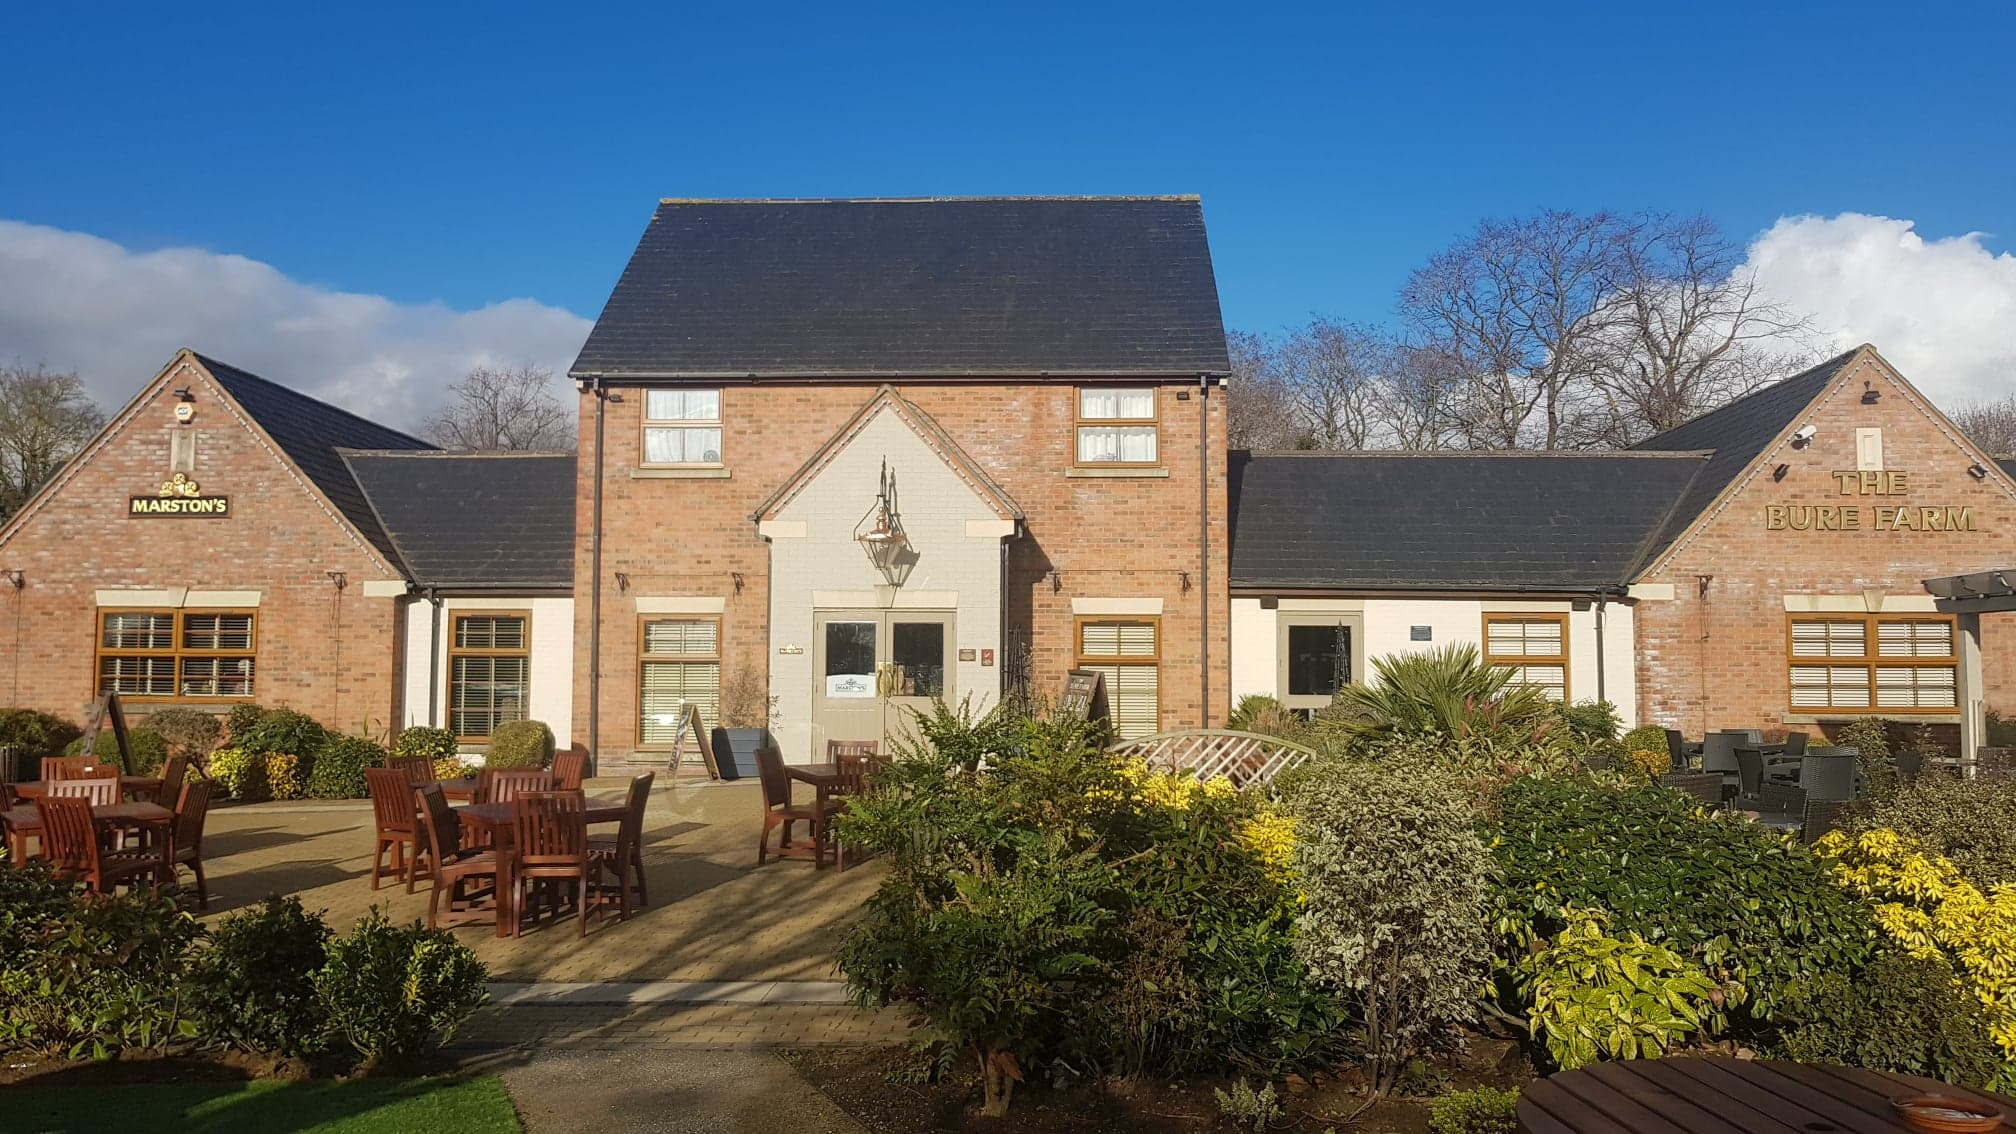 Bure Farm Pub Review Bicester The Family Ticket